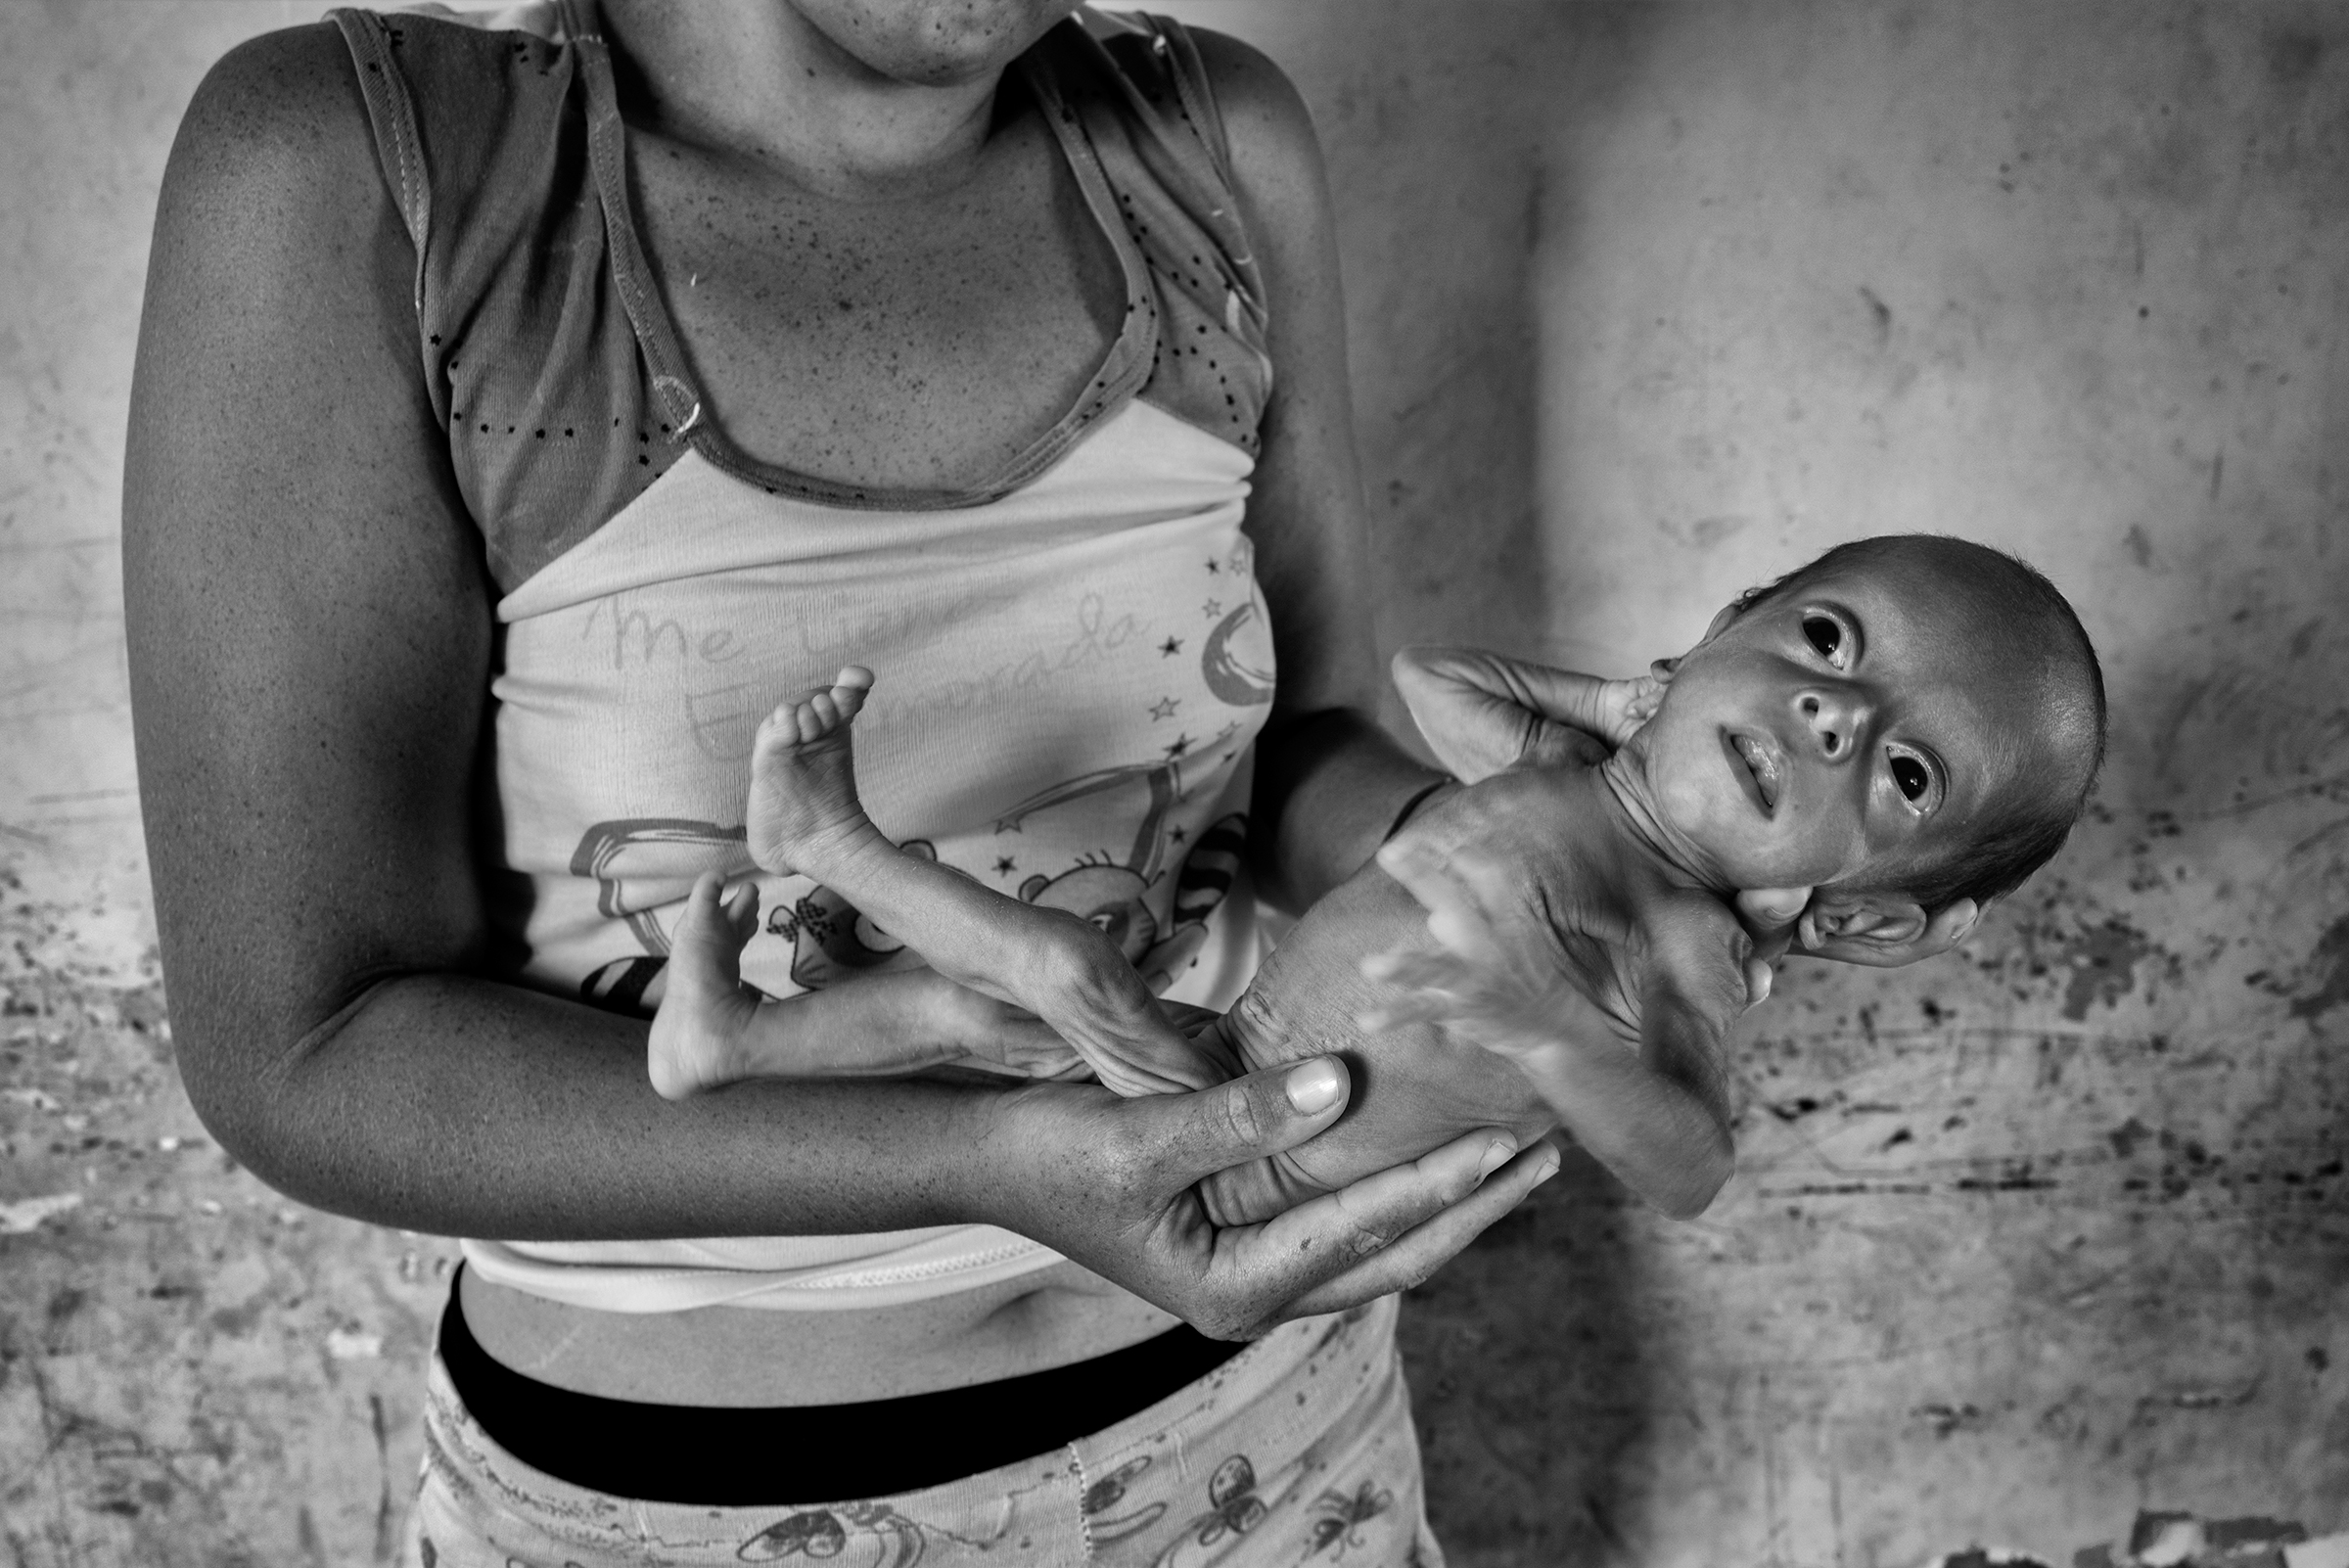 Katherine Castilla, 19, holds her baby girl Sarangeli, who suffers from malnutrition. Castilla lives in the same neighborhood as Blanco.